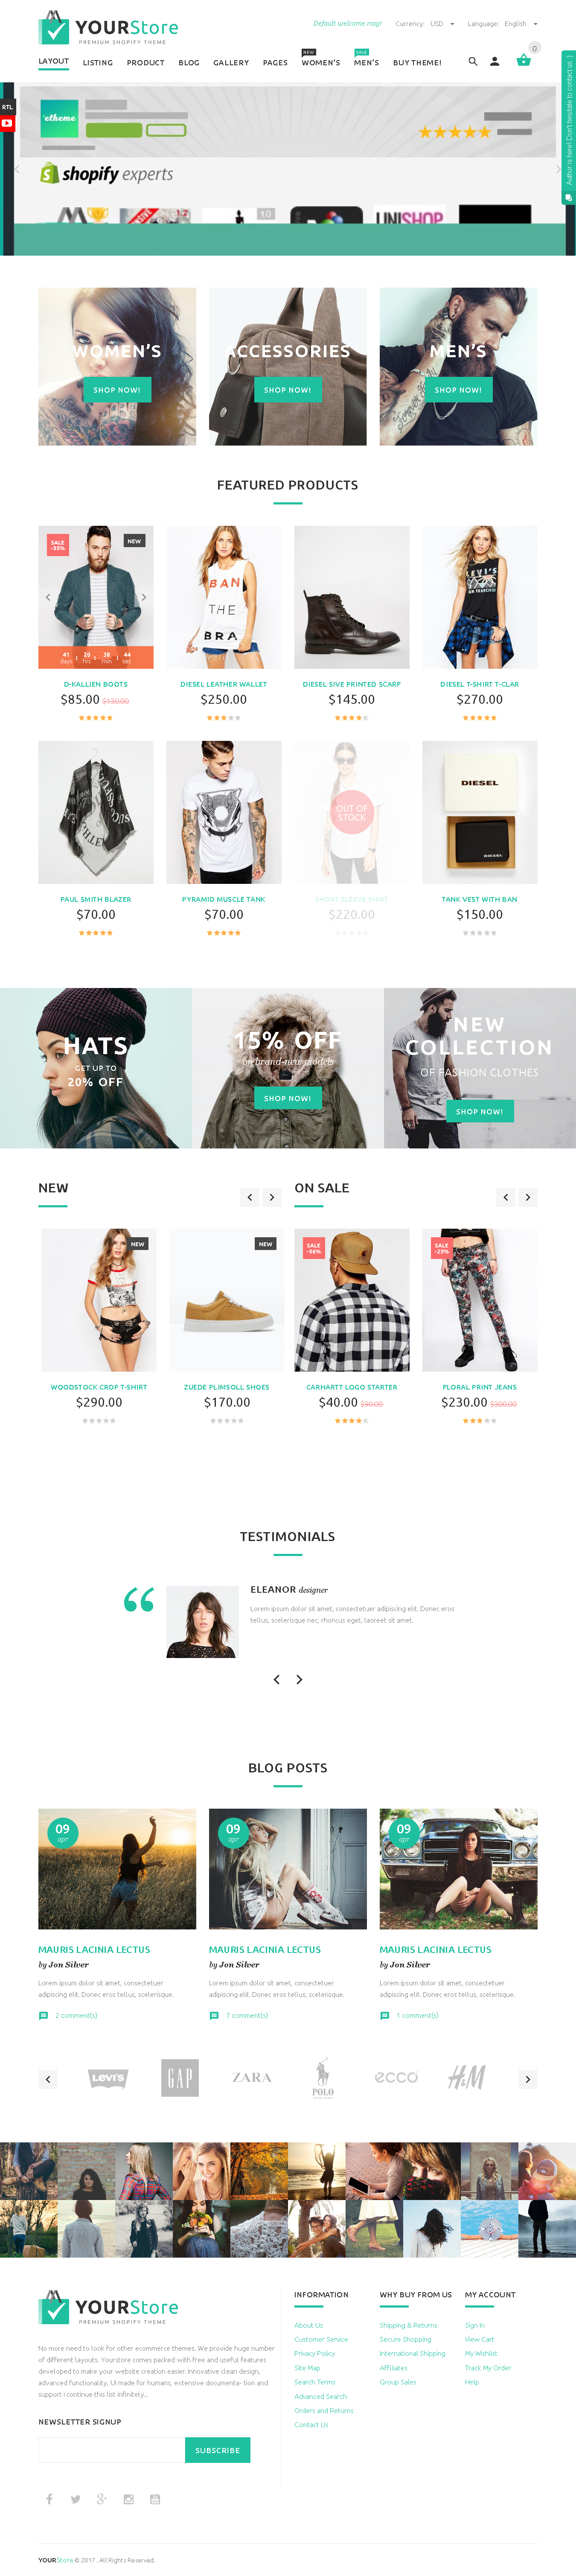 Best 5 Shopify Themes For Artists - YourStore Shopify theme